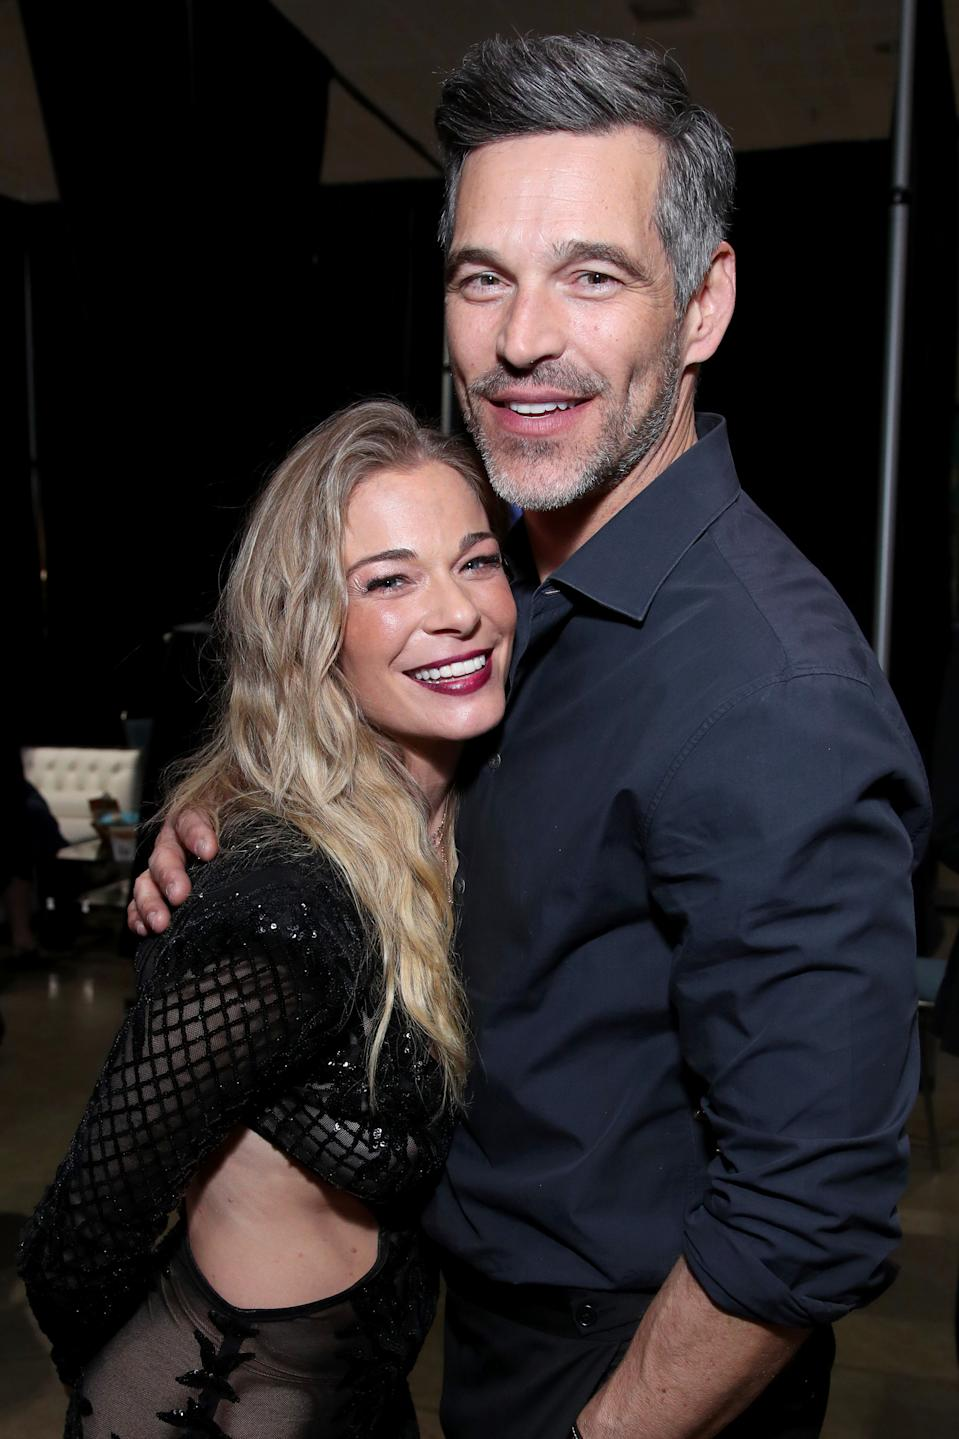 LeAnn Rimes and Eddie Cibrian in 2020. (Photo: Rich Fury/Getty Images for The Recording Academy)